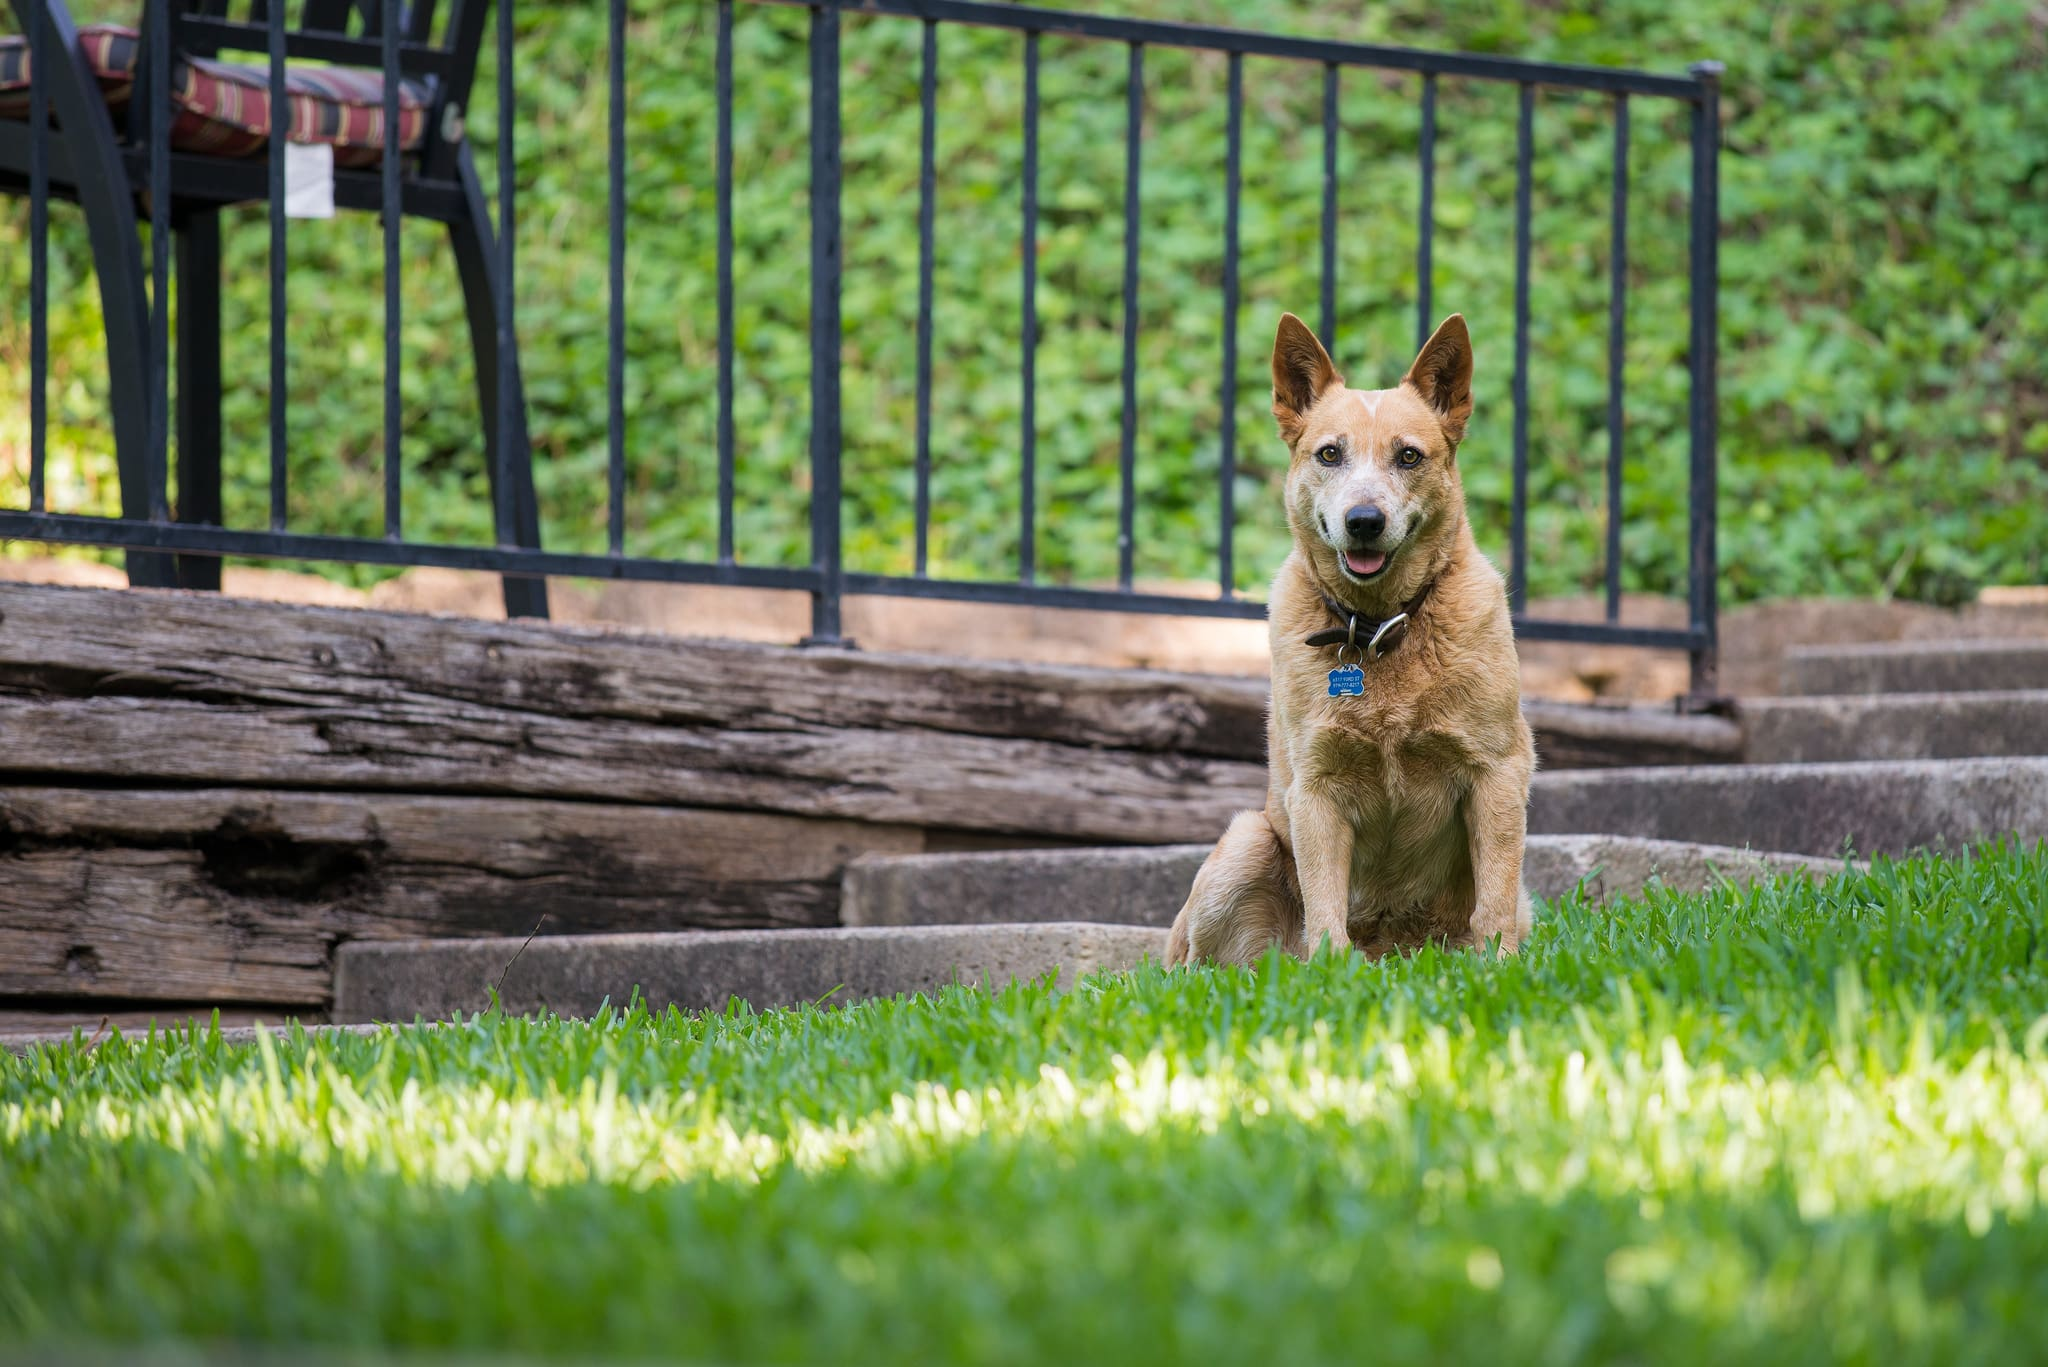 Stop barking now: The 3 best ultrasonic bark control devices